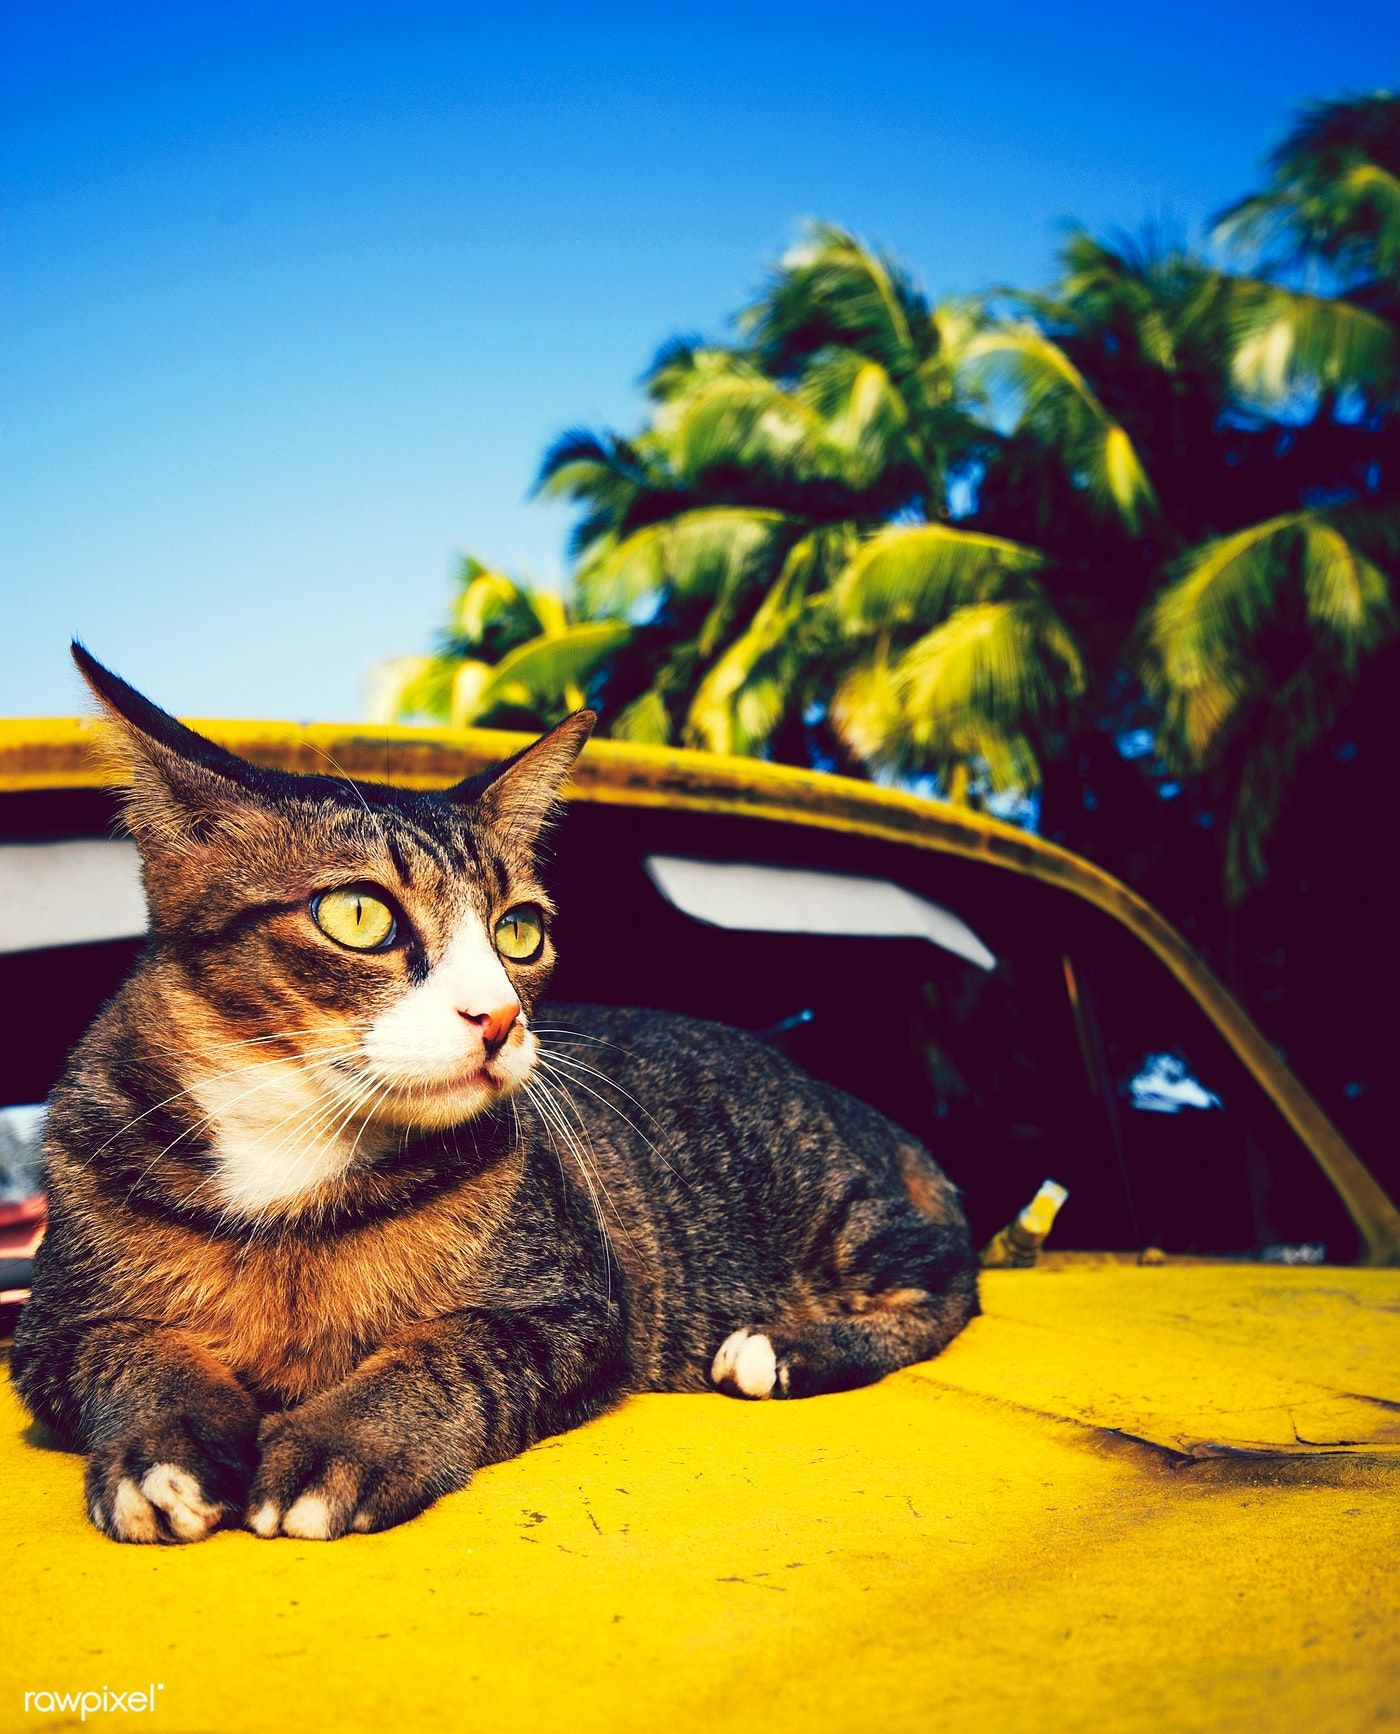 Download premium image of Cat relaxing on an old classic car 423437